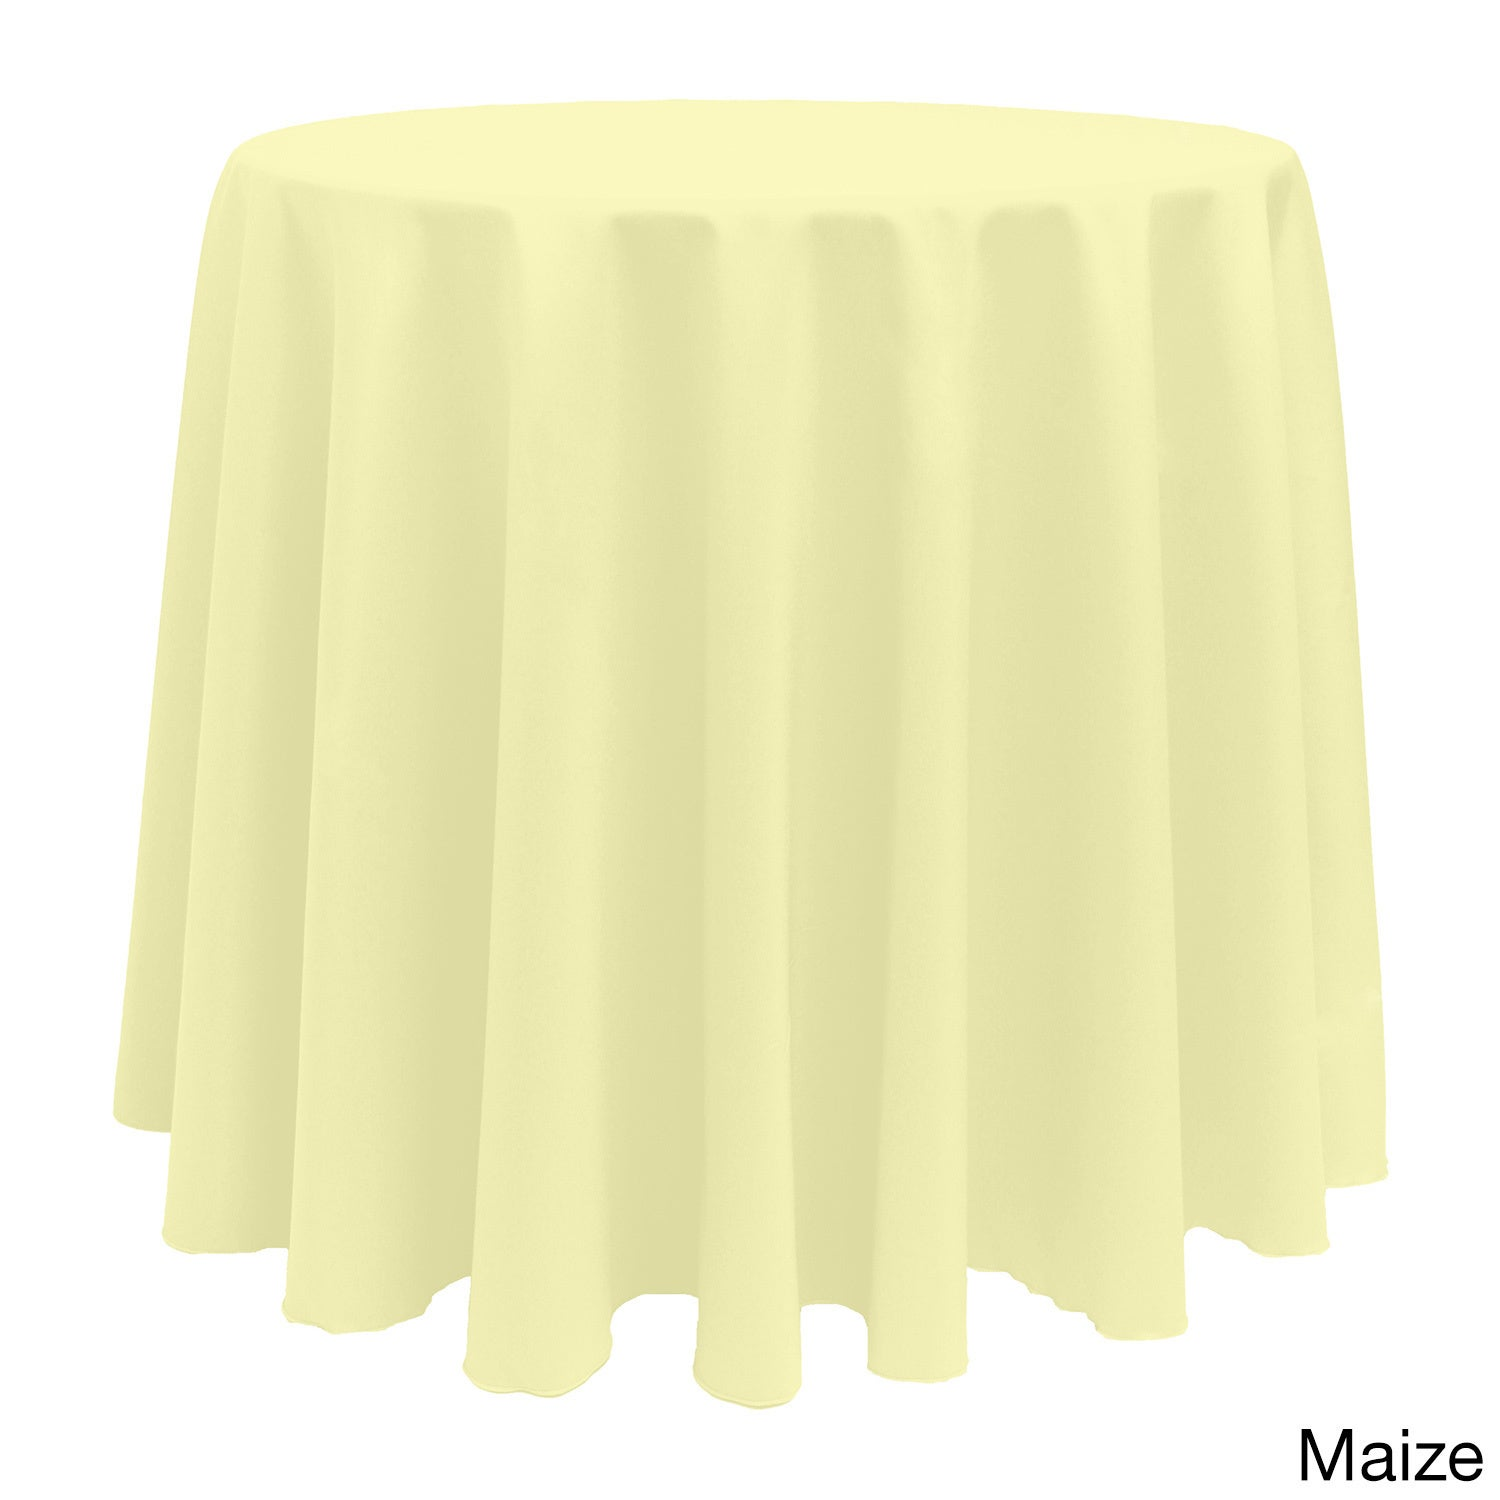 Beau Shop Bright Solid Color 90 Inch Round Tablecloth   Free Shipping On Orders  Over $45   Overstock.com   10222596